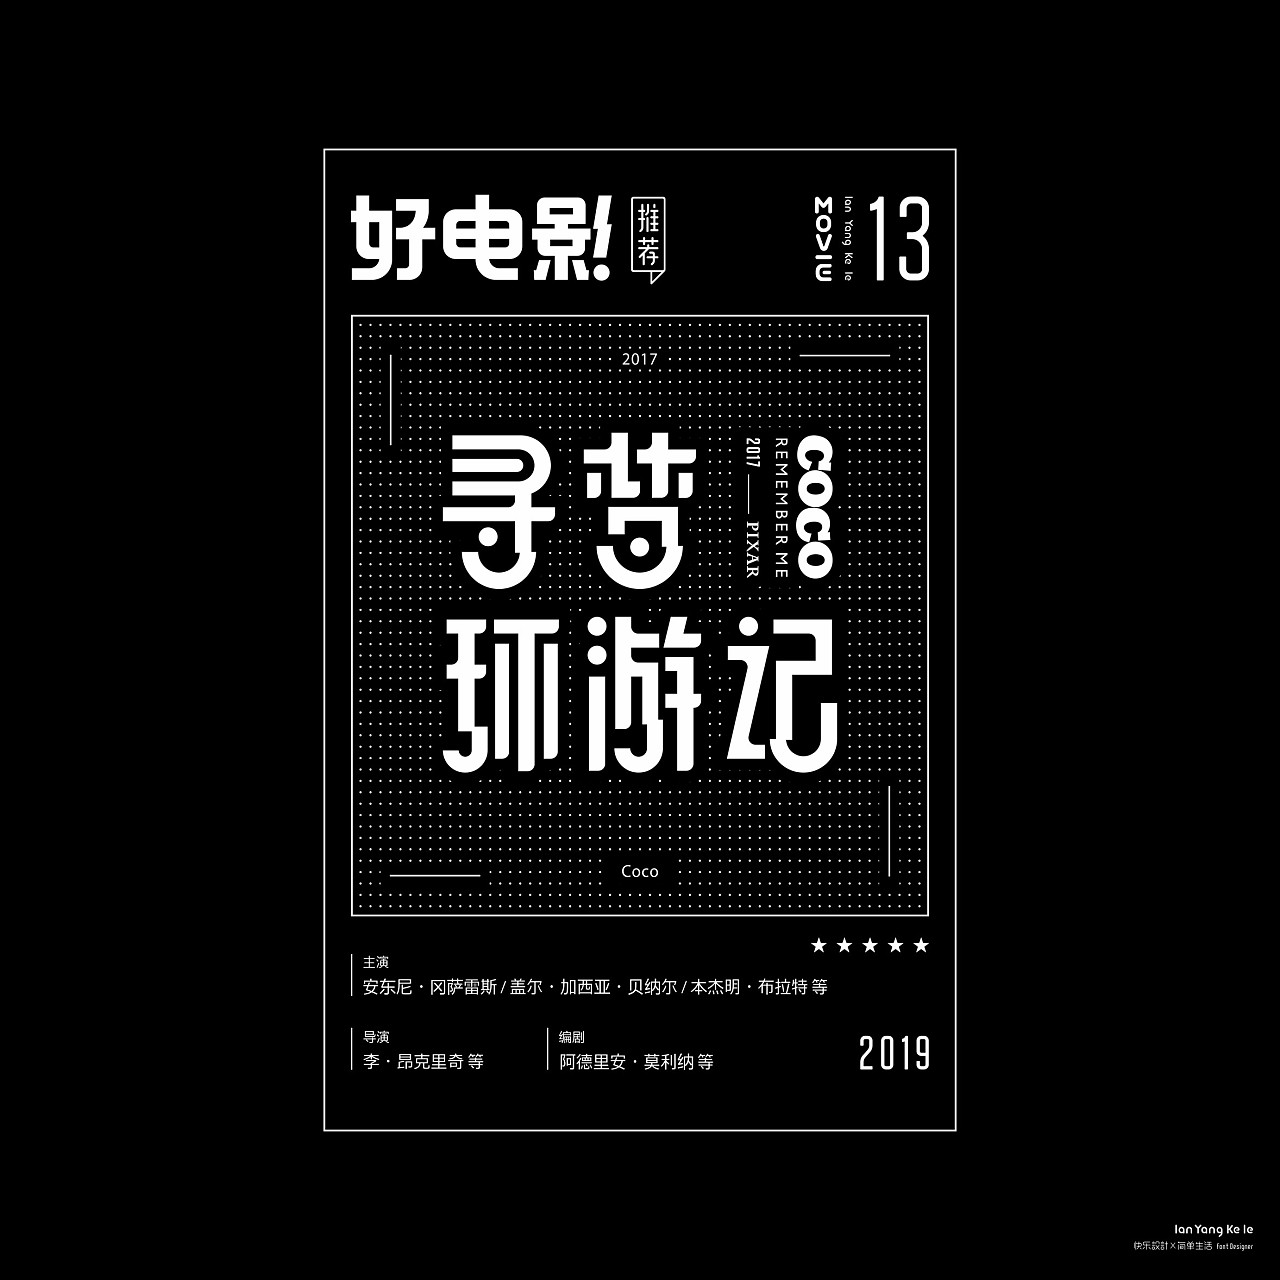 Chinese Creative Font Design-Tasteful comprehensive design, font color format